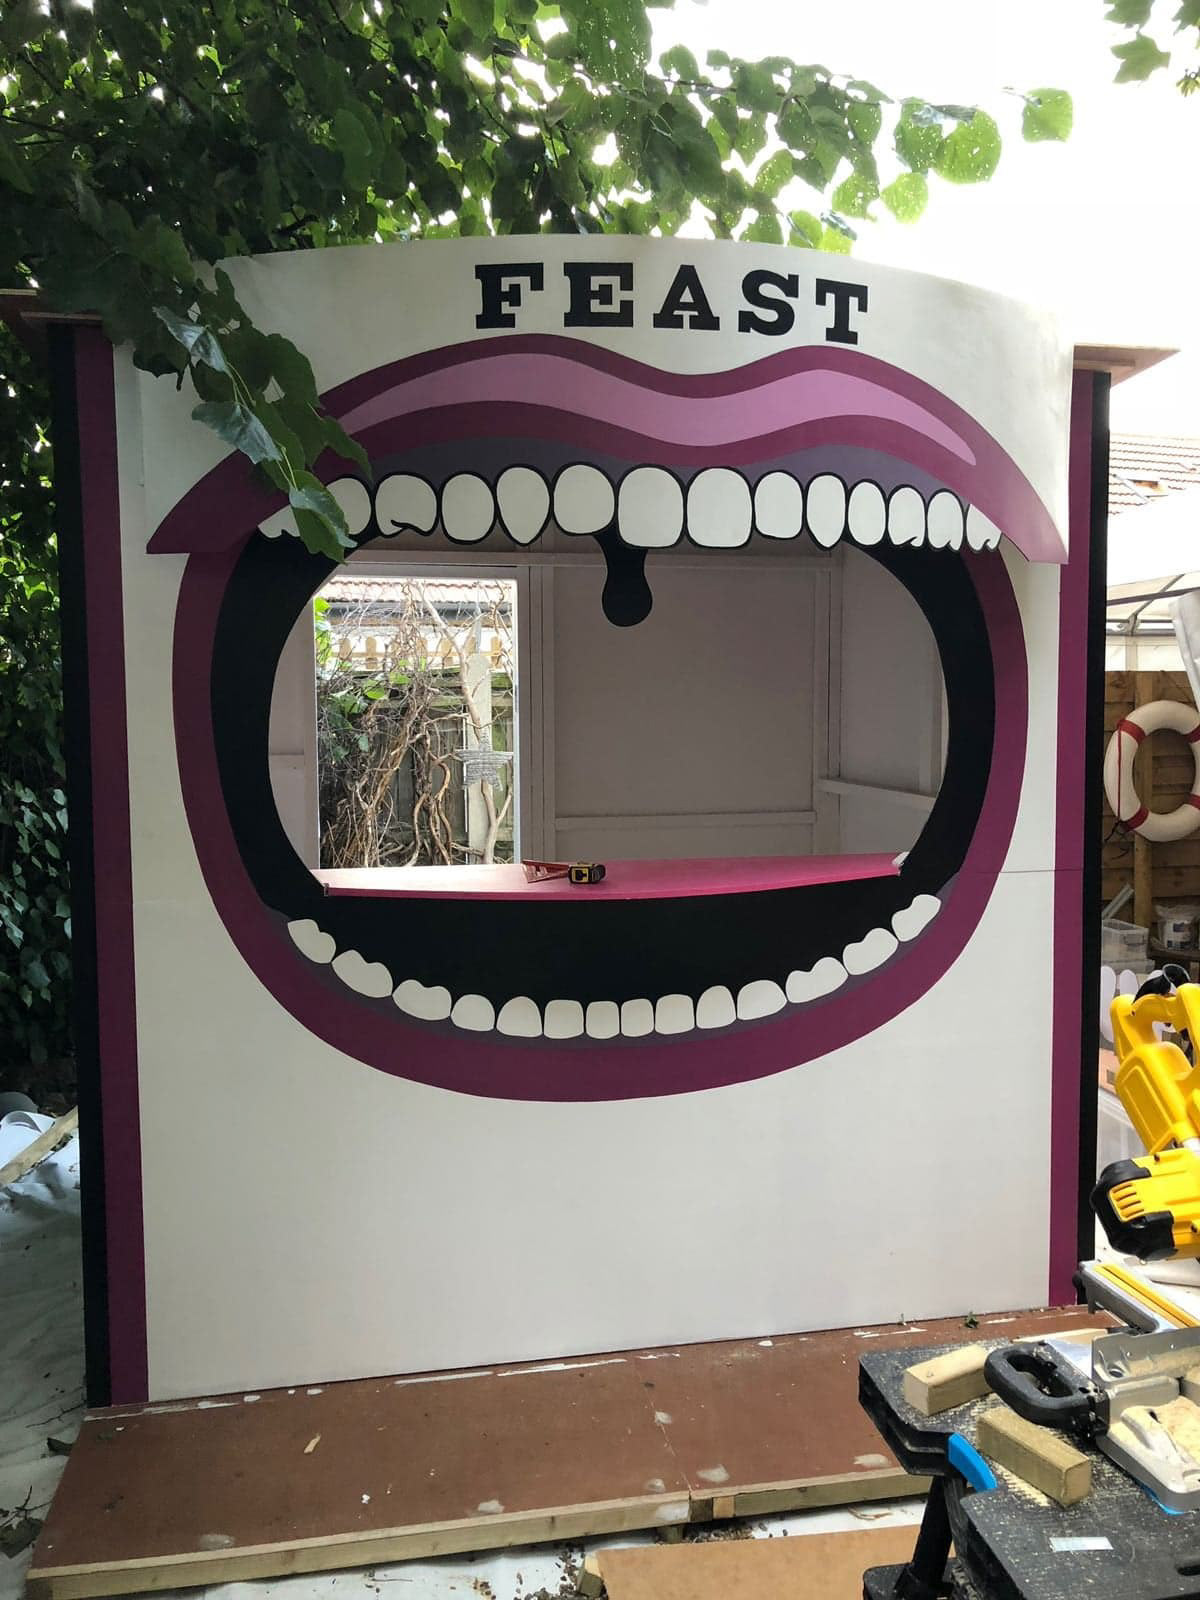 set stall painting   quirky Playful Unusual Experiential